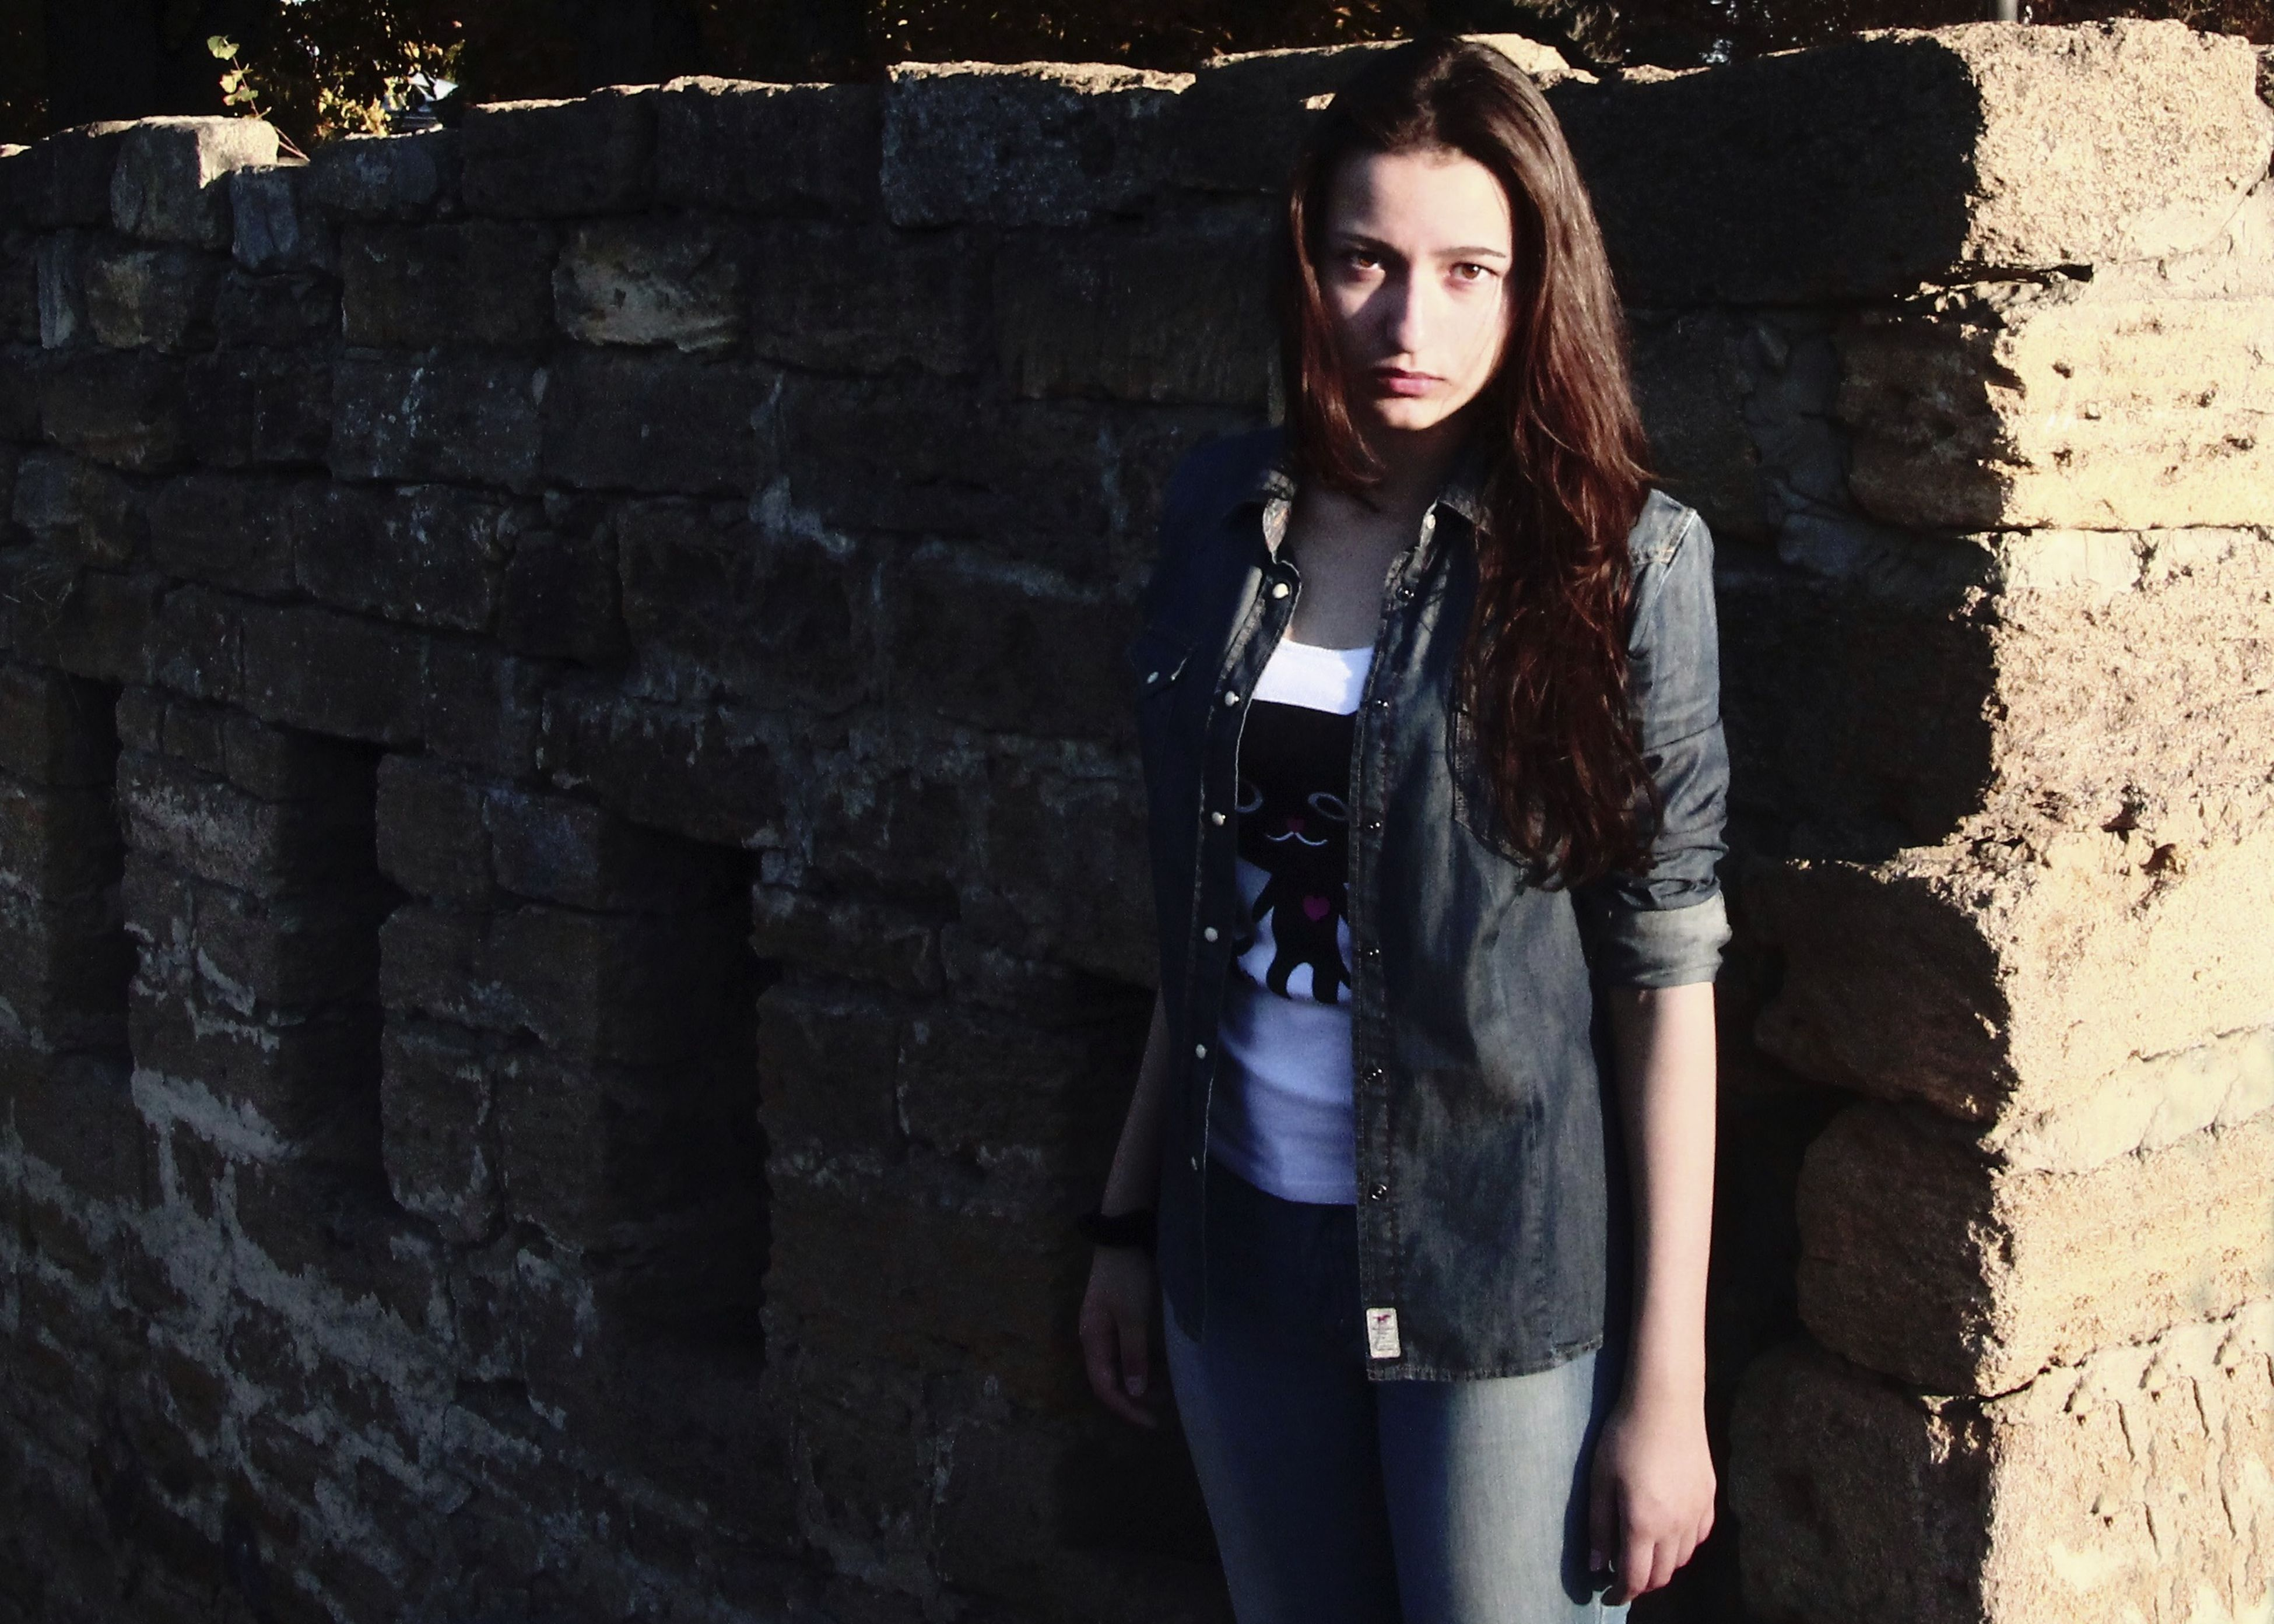 young adult, young women, person, portrait, looking at camera, lifestyles, front view, casual clothing, standing, leisure activity, smiling, fashion, architecture, built structure, long hair, wall - building feature, three quarter length